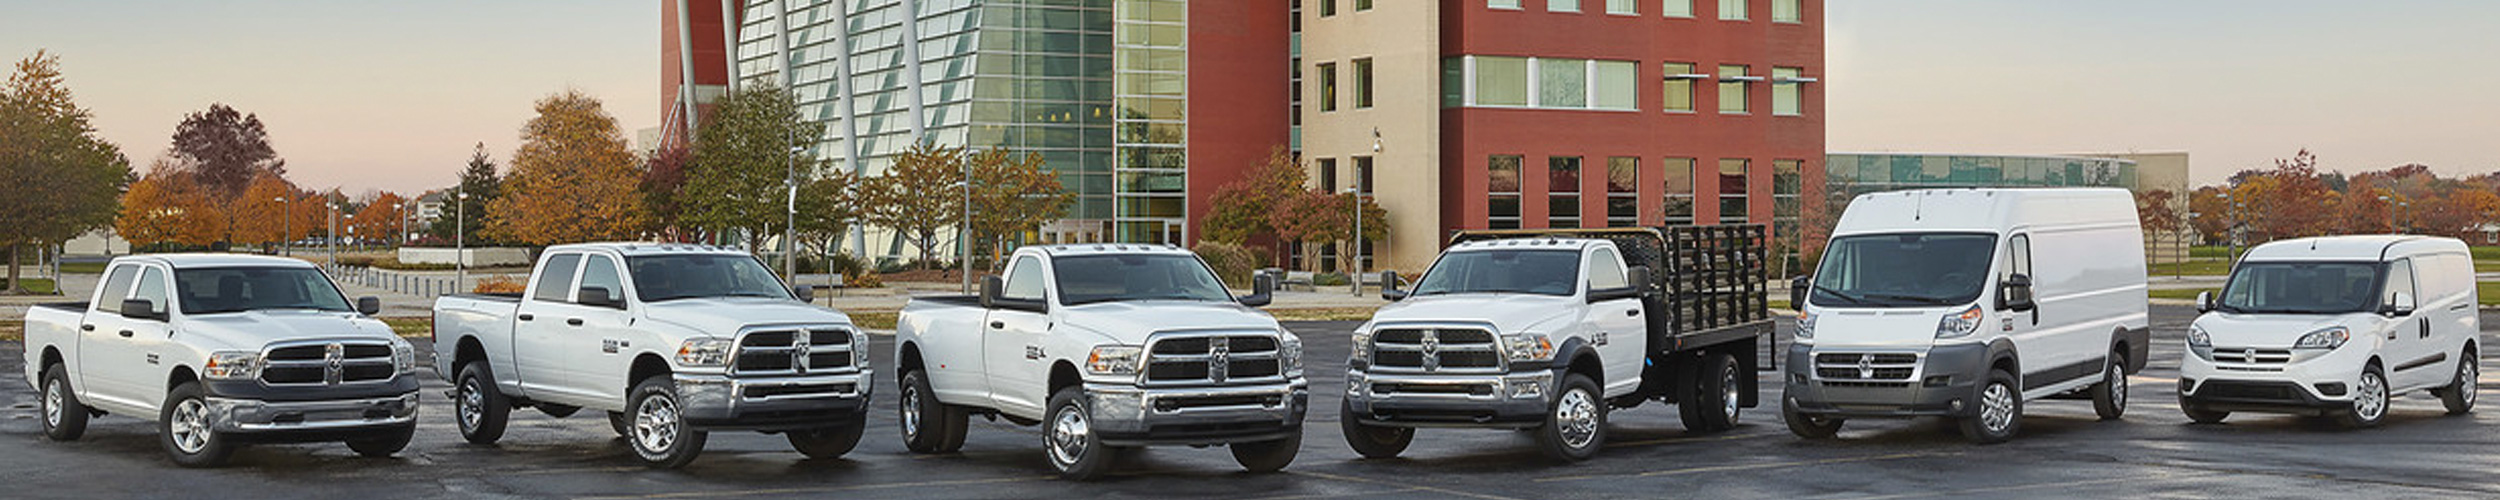 RAM Fleet Vehicles